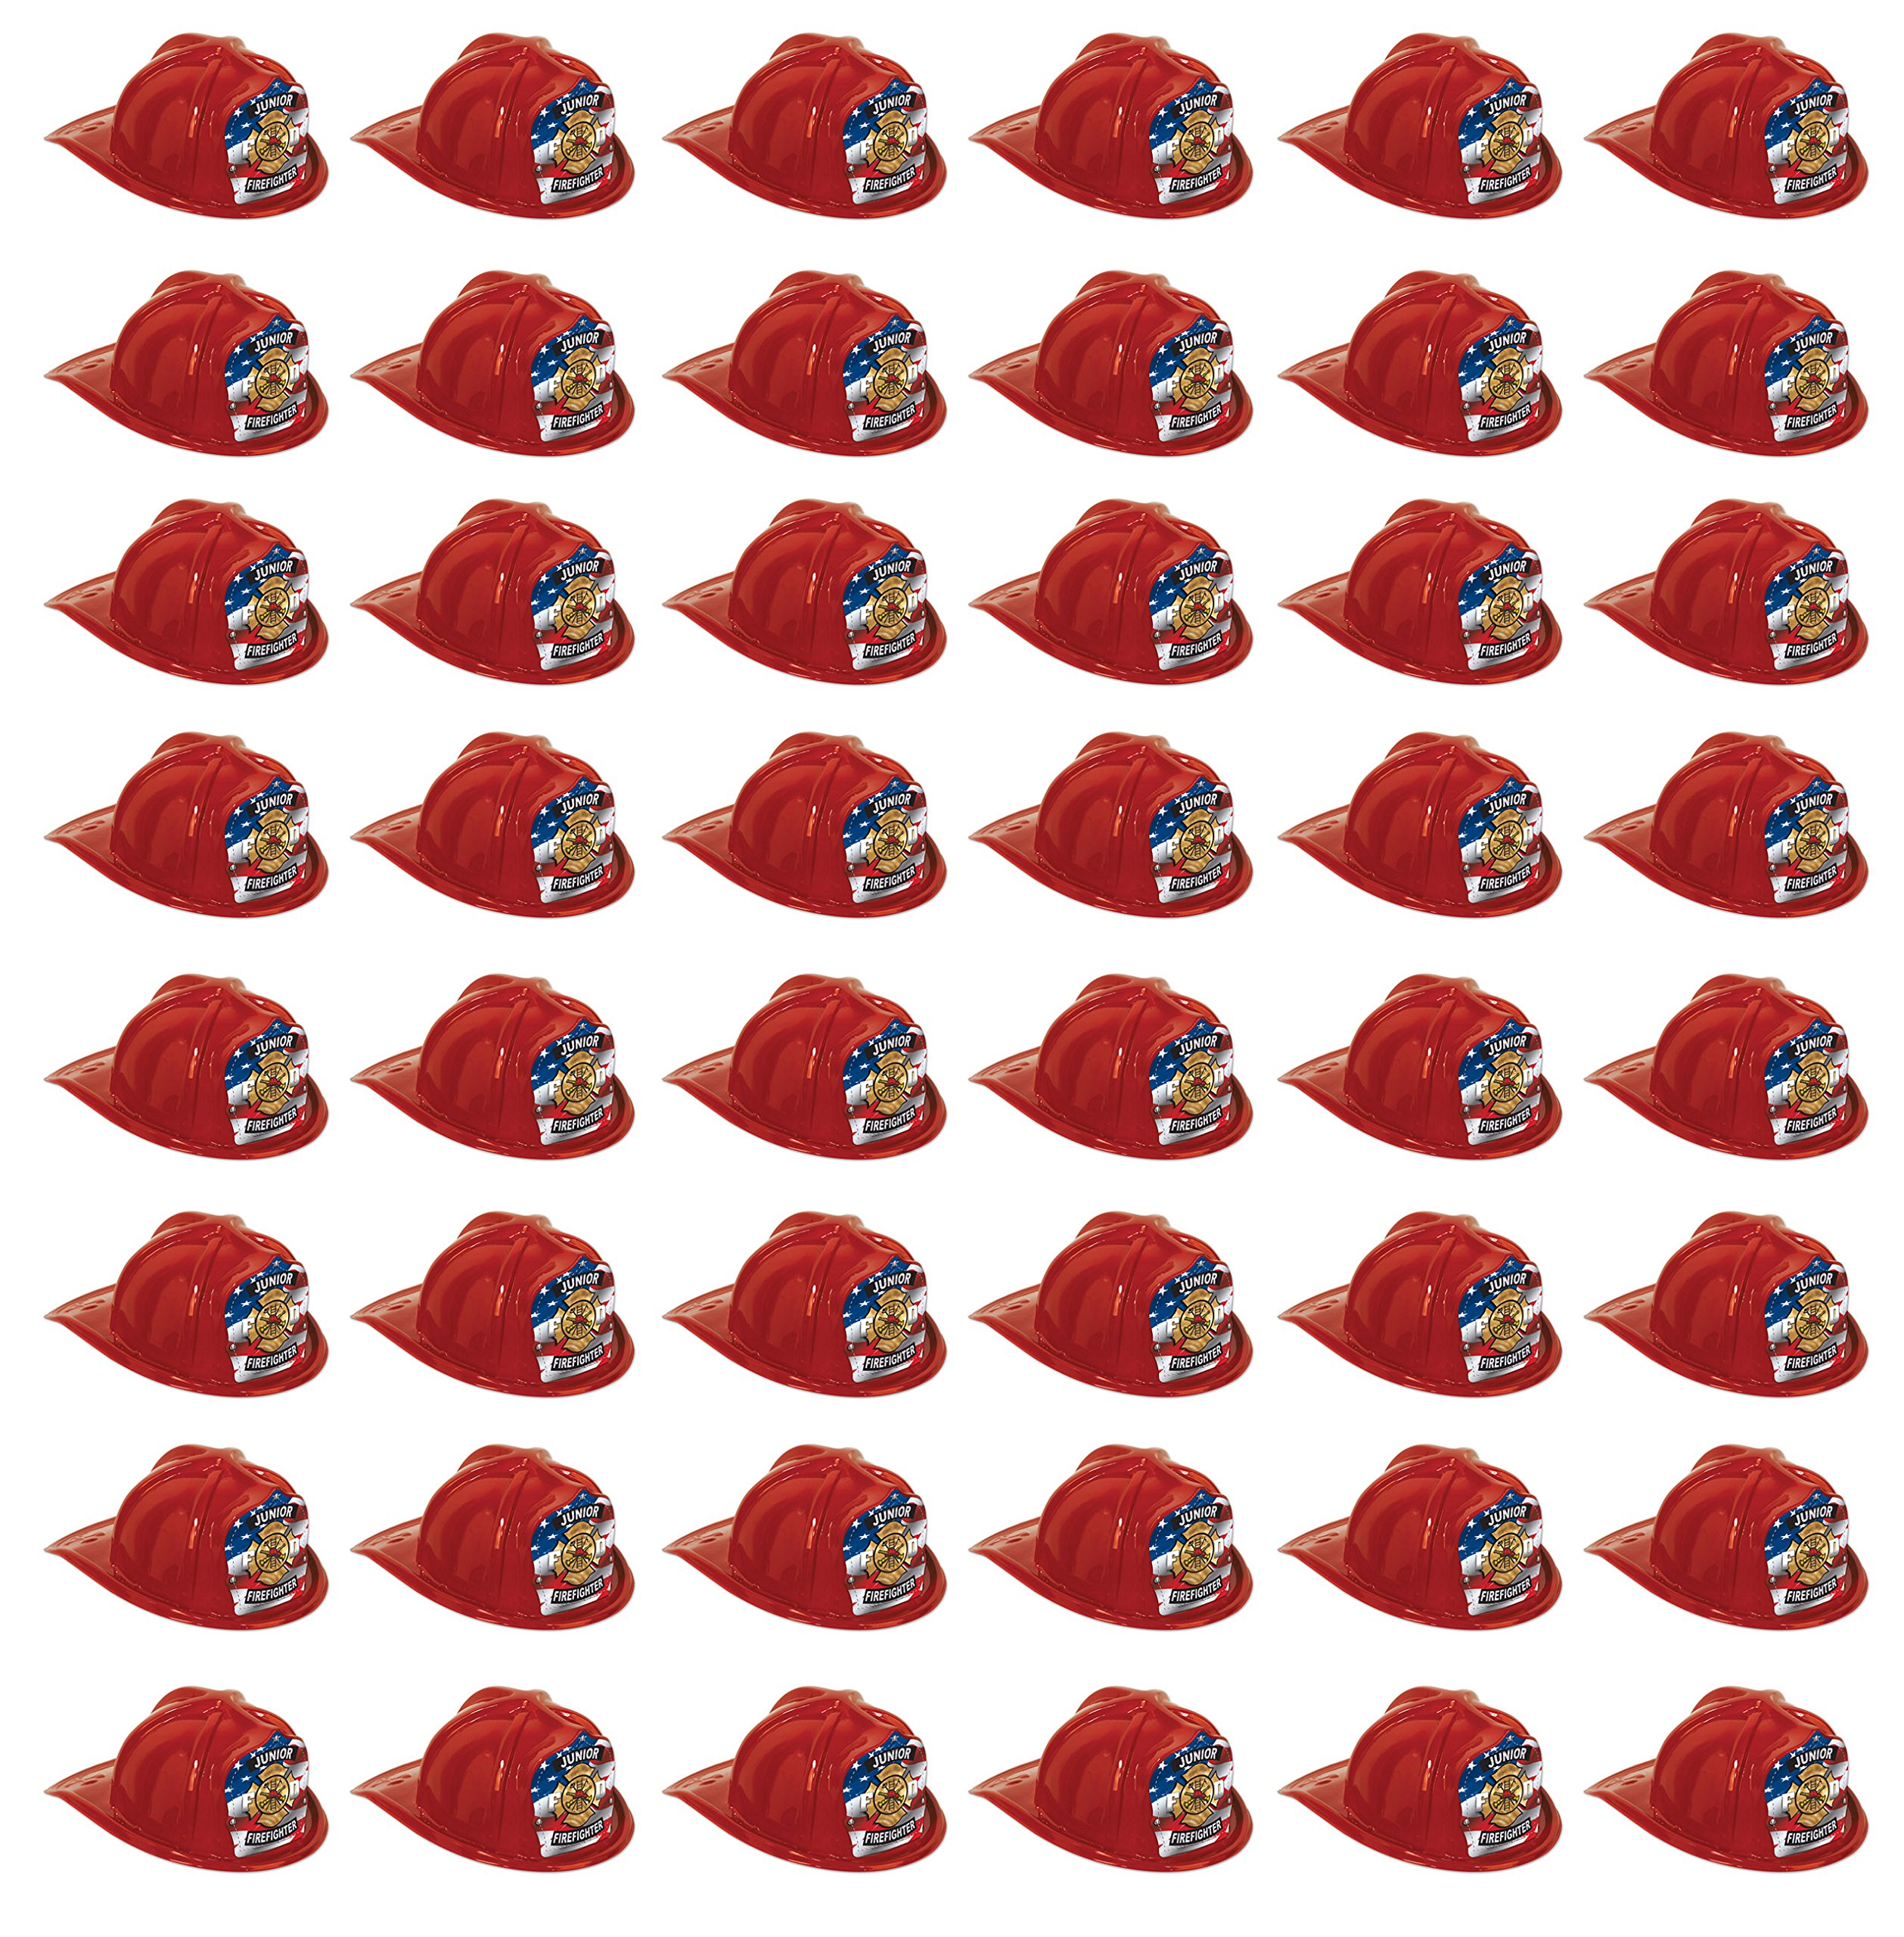 Beistle 66777-1 48-Pack Plastic Junior Firefighter Hats, Red